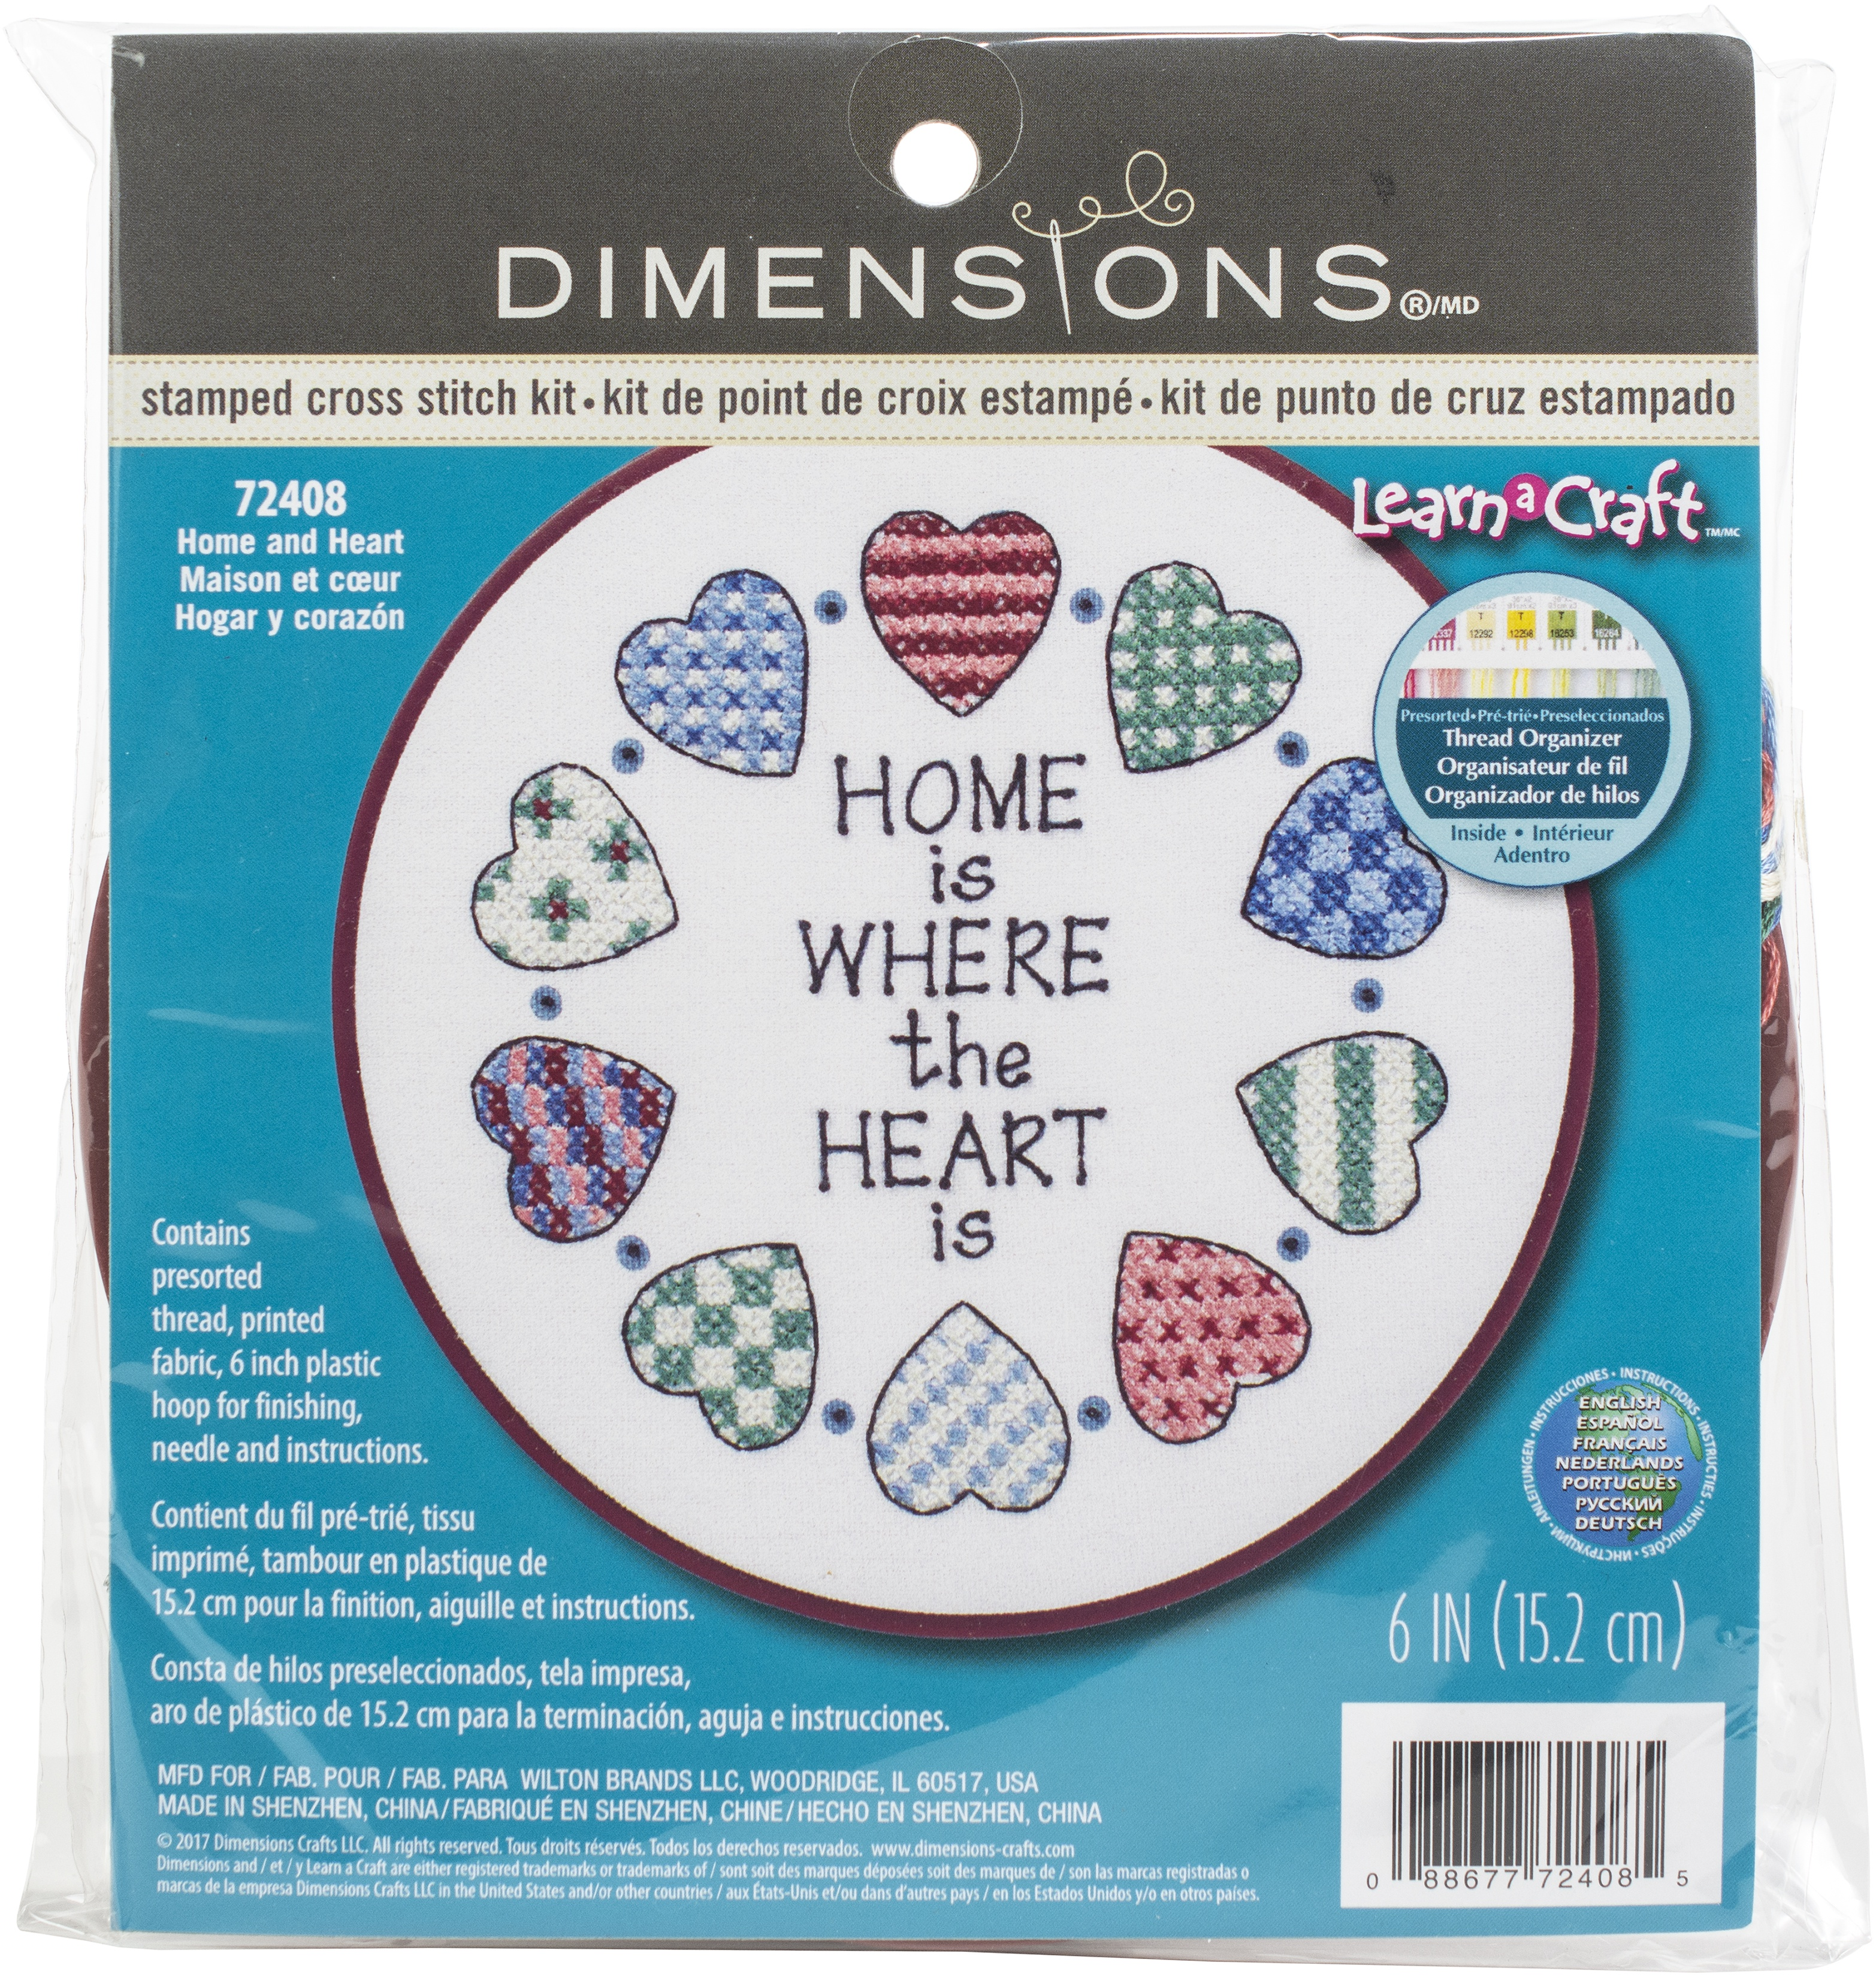 Dimensions Learn-A-Craft Stamped Cross Stitch Kit 6 Round-Home & Heart